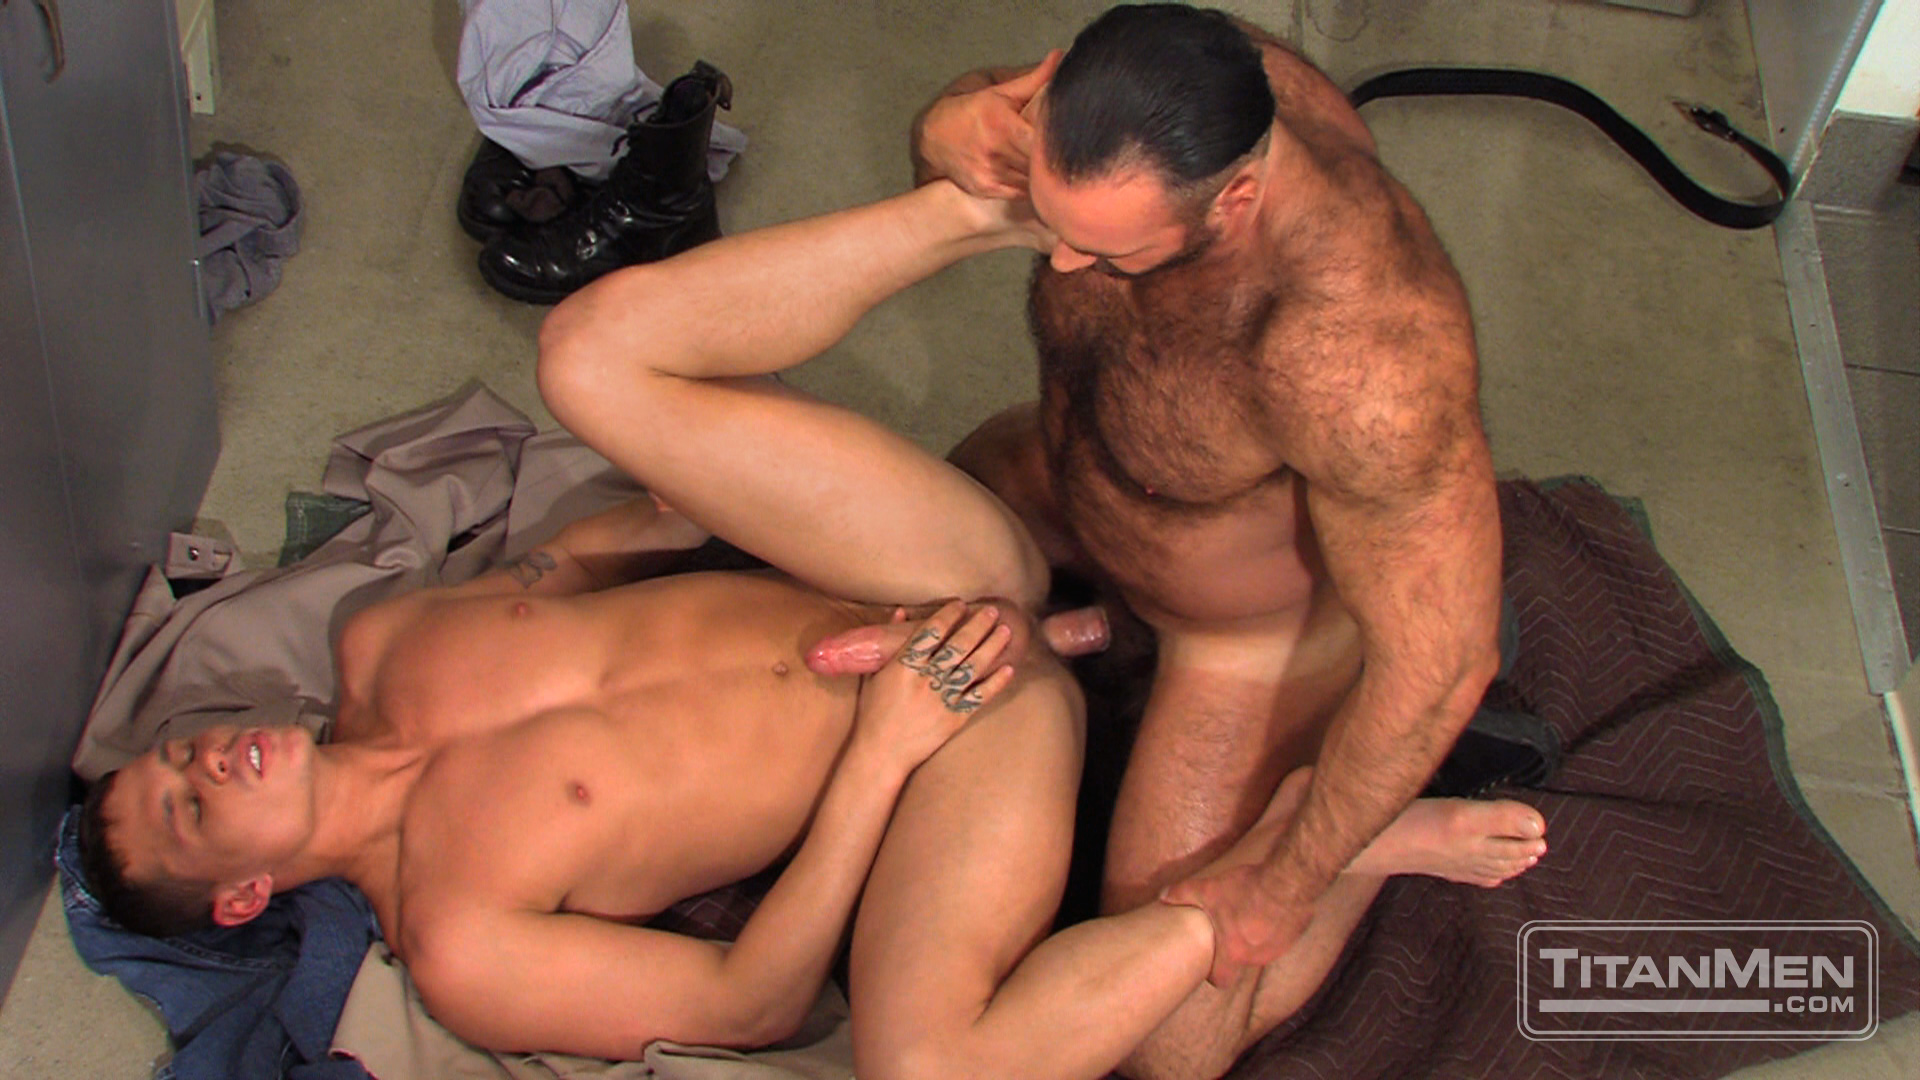 otla_scene02_024 Hung Hairy Muscle Corrections Officer Fucks A Smooth Hung Muscle Inmate